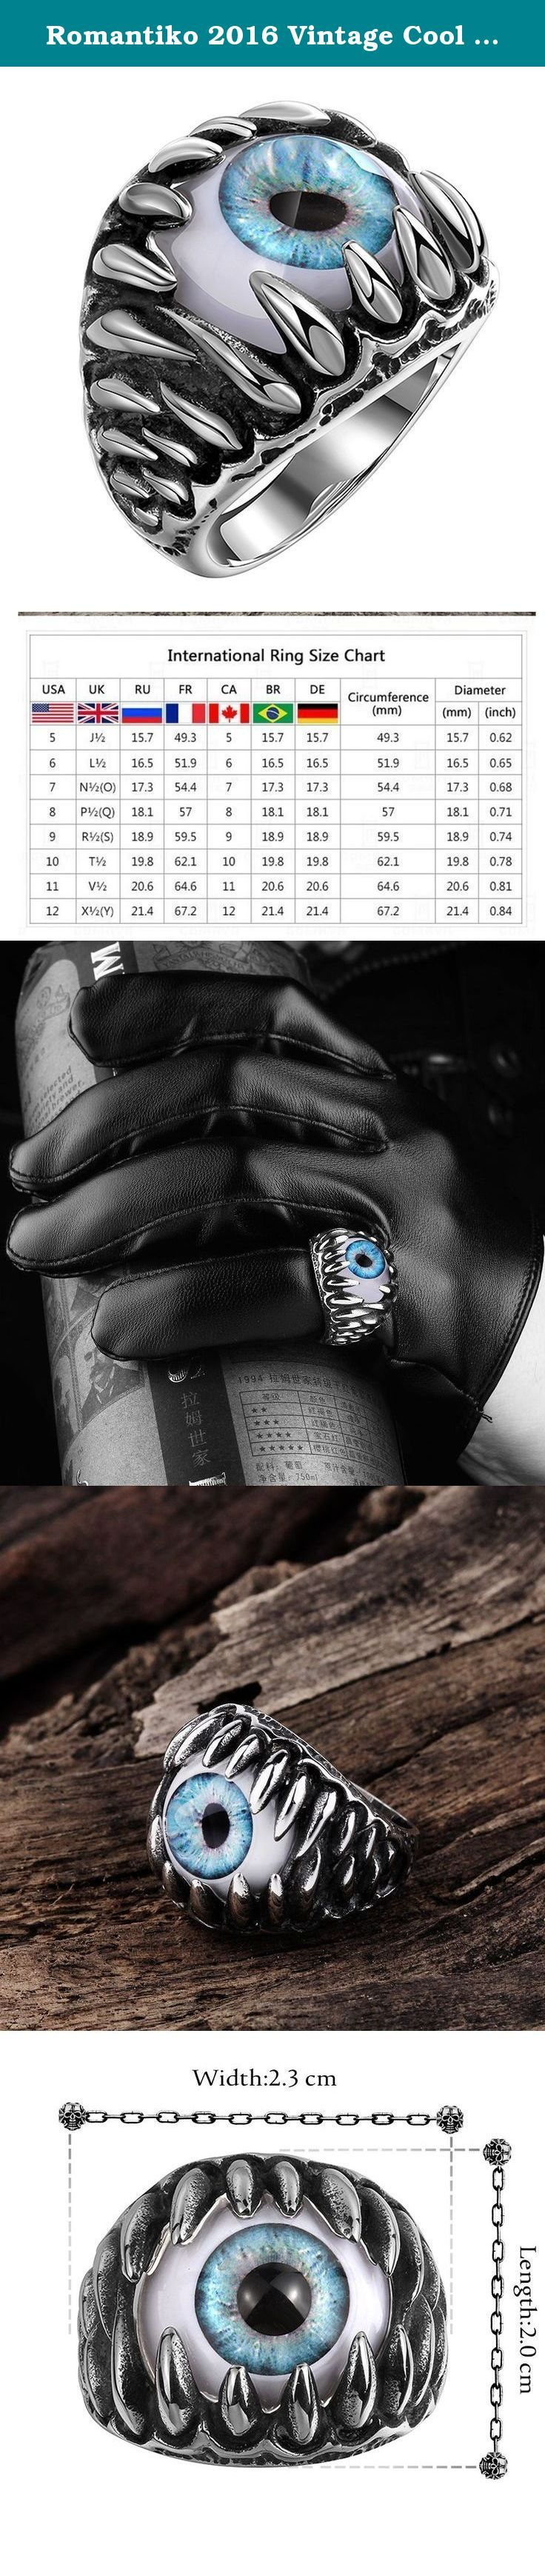 Romantiko 2016 Vintage Cool Stainless Steel Gothic Dragon Claw Devil Eye Biker Men's Ring Blue 8. Romantiko 2016 Vintage Cool Stainless Steel Gothic Dragon Claw Devil Eye Biker Men's Ring Stainless Steel jewelry does not tarnish and oxidize, which can last longer than other jewelries. It is able to endure a lot of wear and tear. And it is amazingly hypoallergenic. Such advantages make it a more popular accessory. Our own production suppliers to ensure that, on the basis of reasonable…